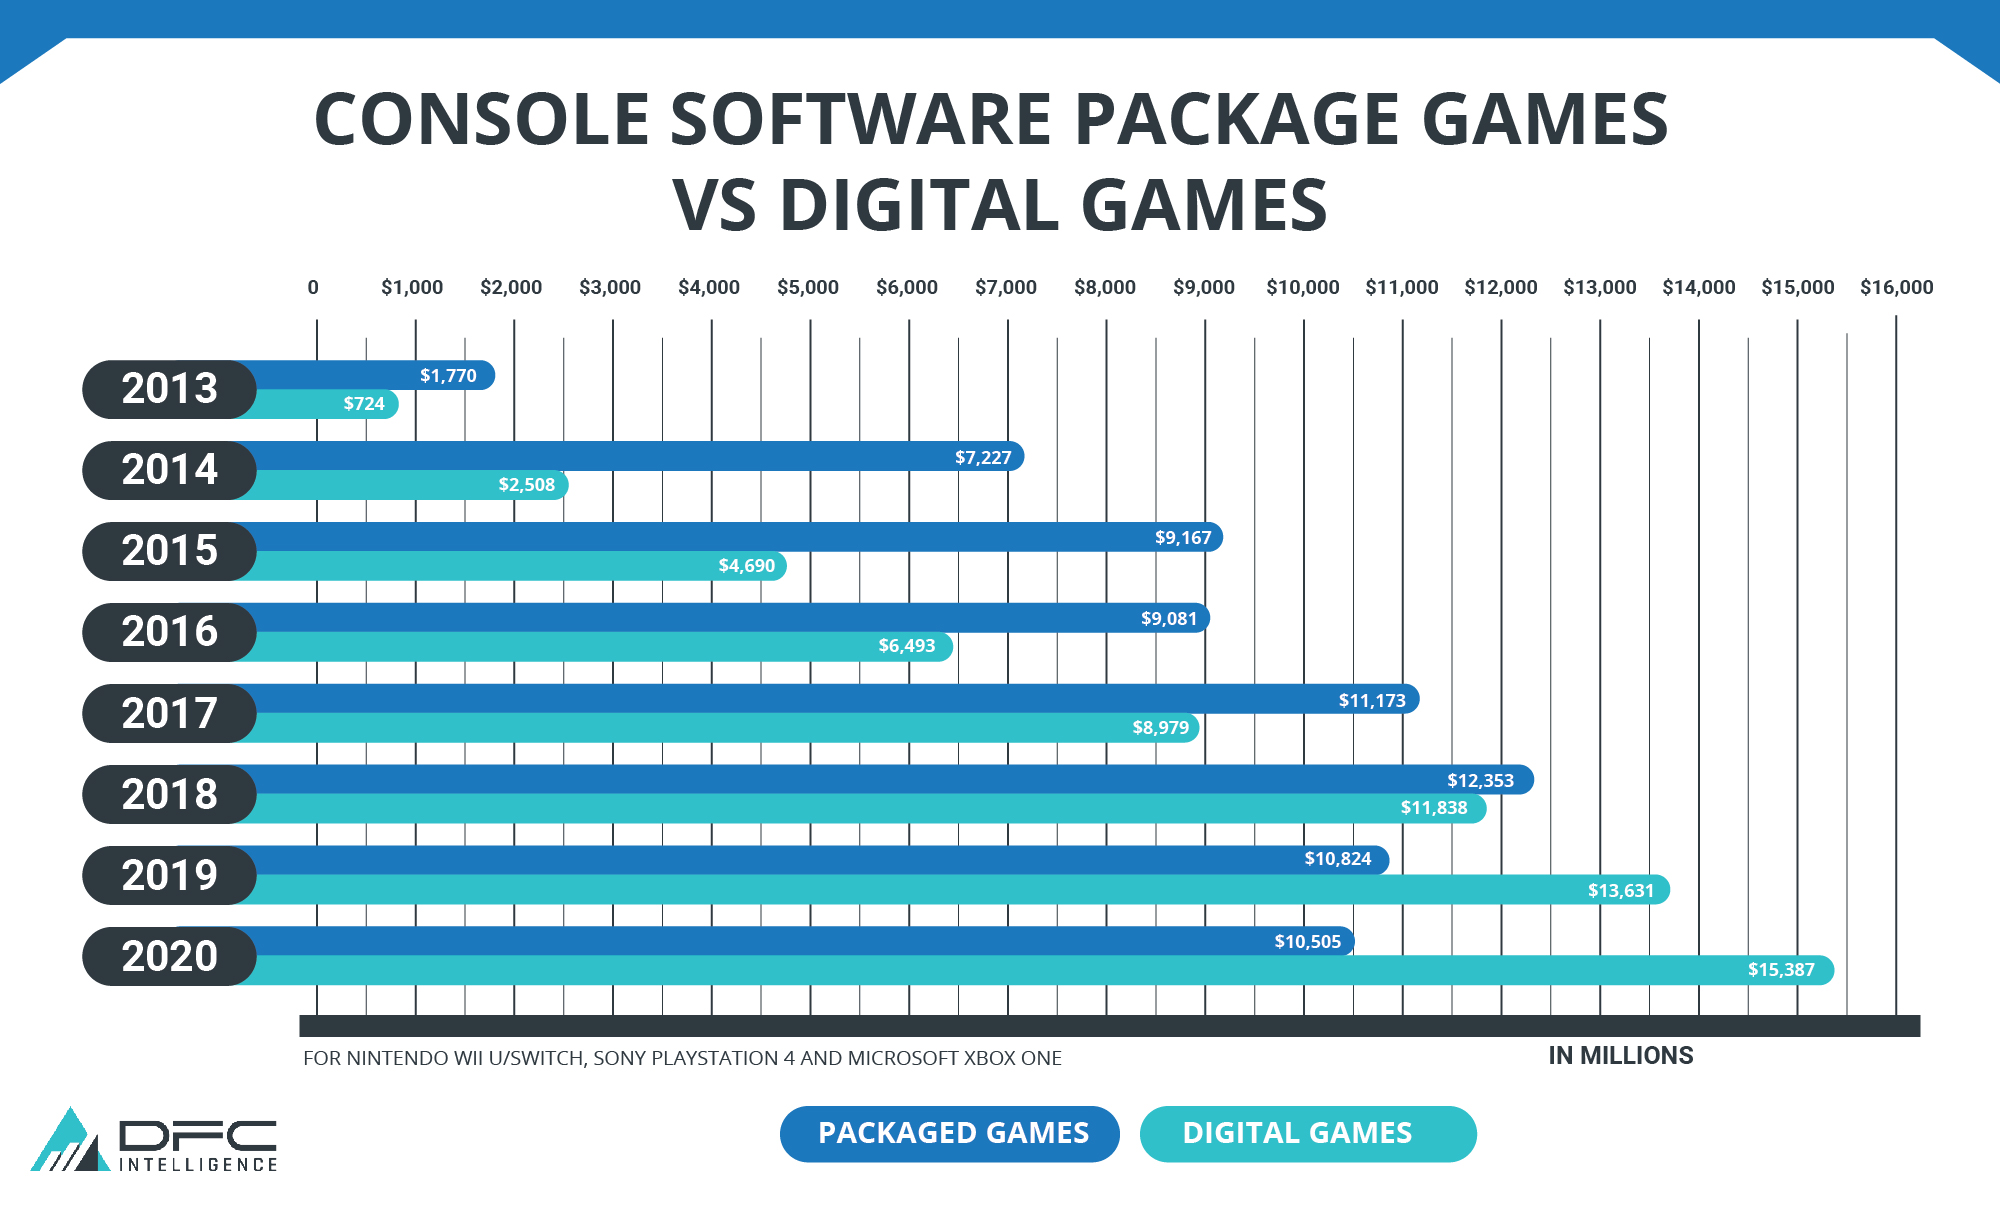 Console Software Games, Packaged Vs Digital